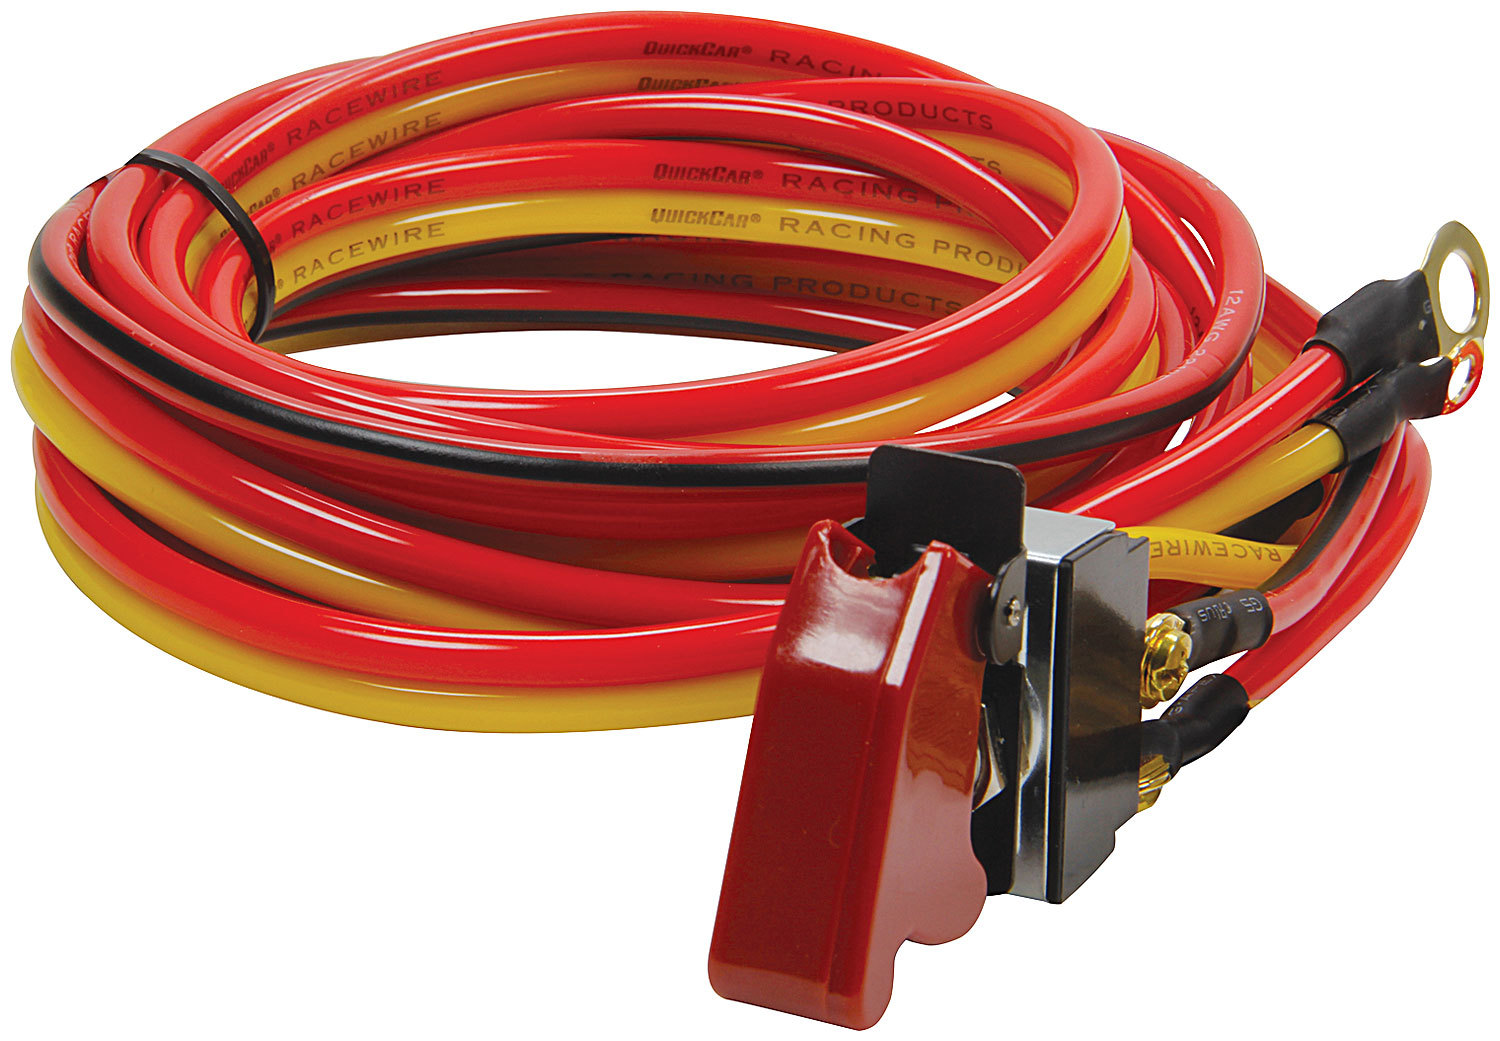 QuickCar 50-507 Switch Wiring Harness, Toggle, Off / On / Momentary, Safety Cover, Kit